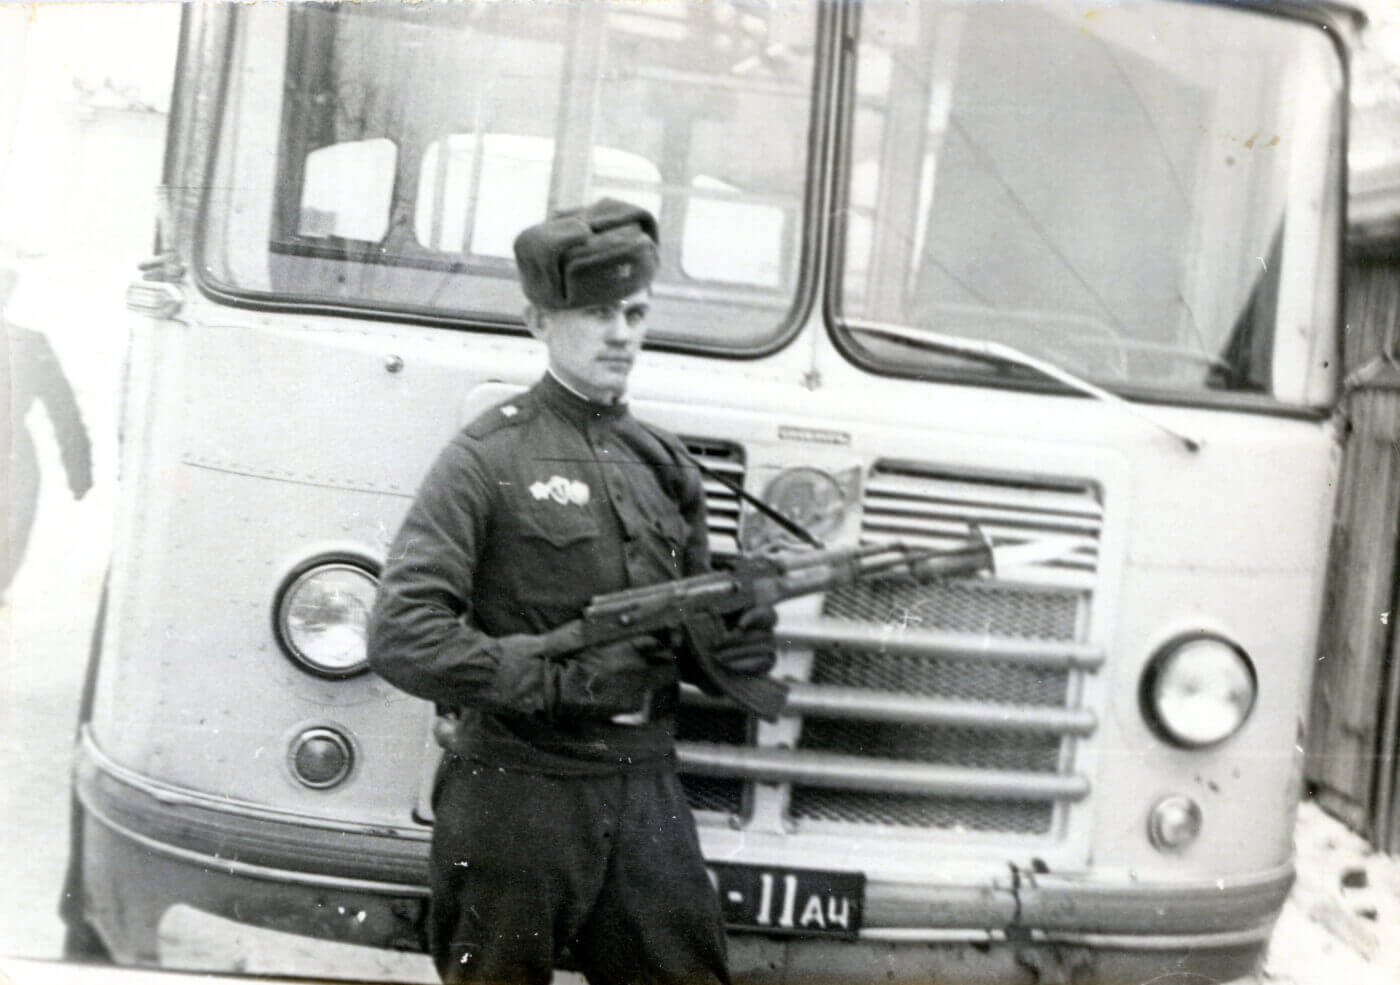 USSR soldier with AK-47